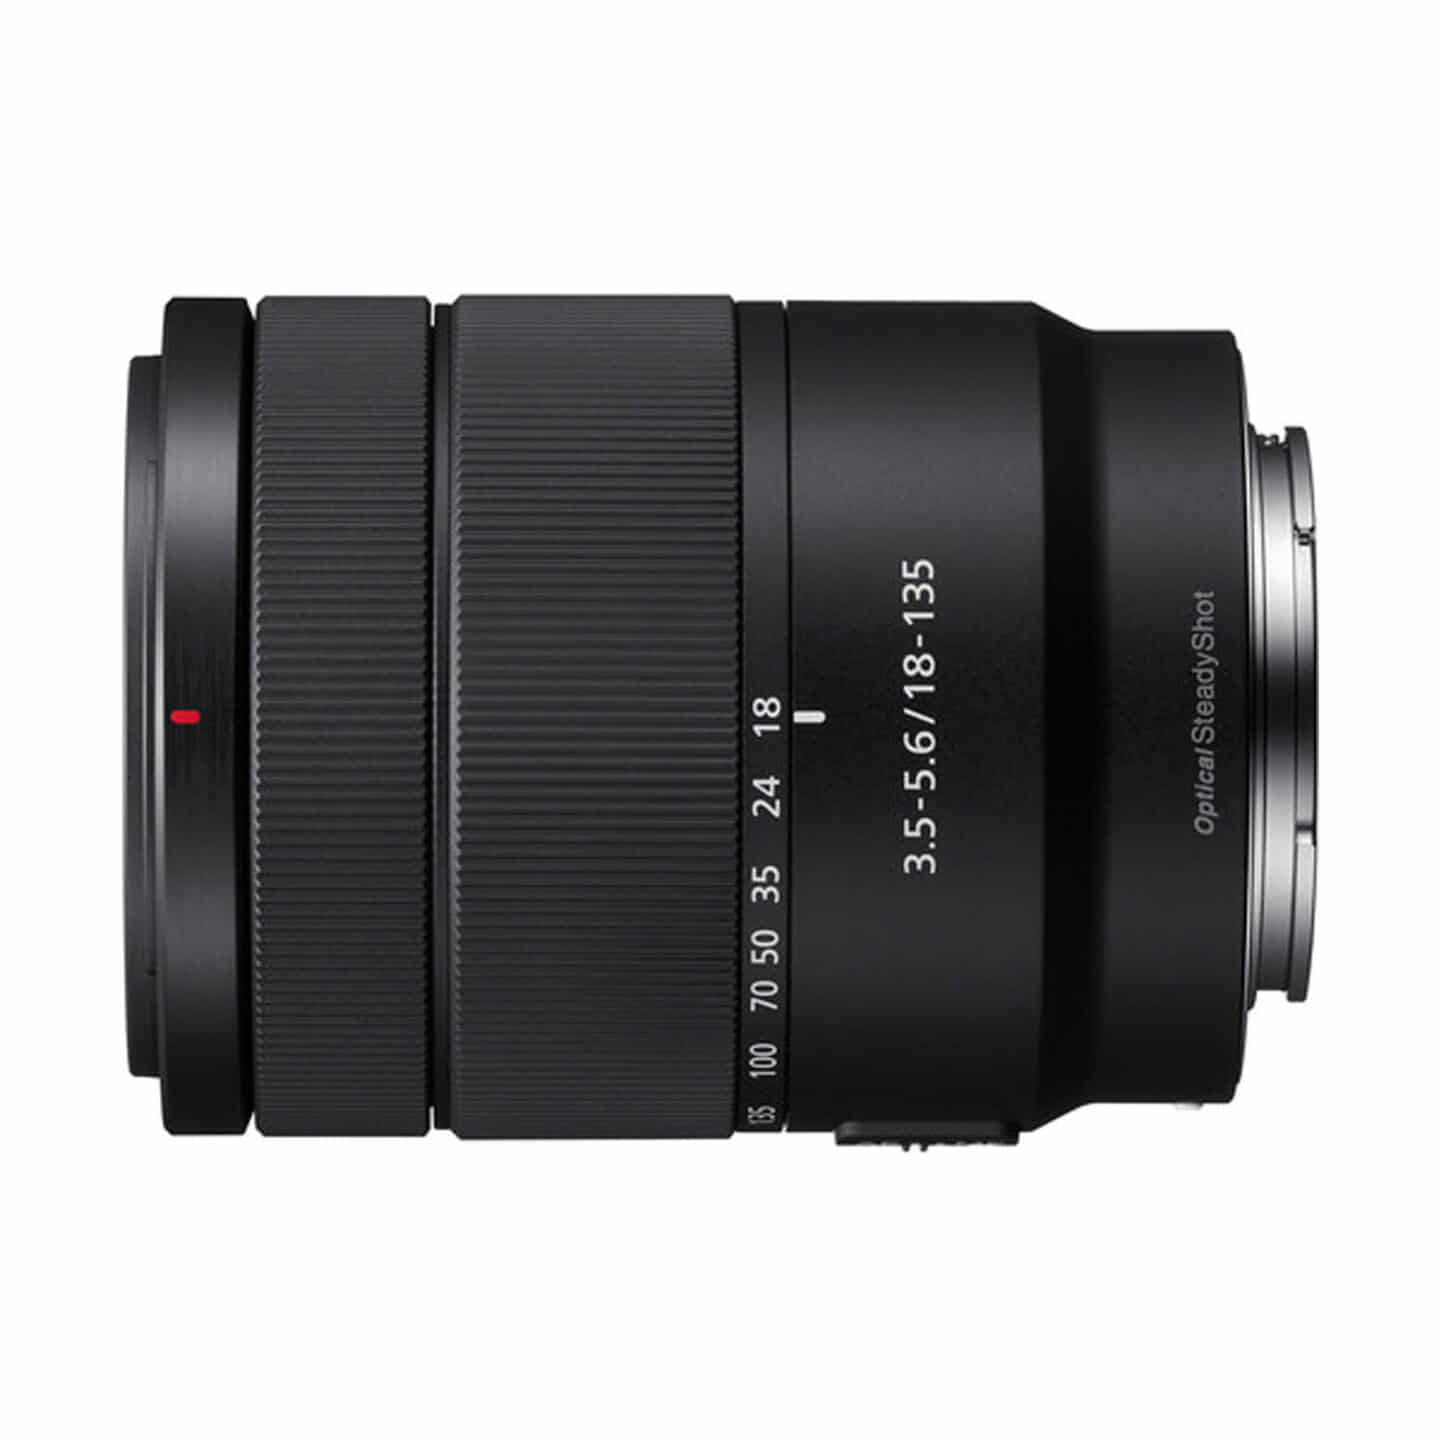 Sony E 18-135mm f/3,5-5,6 OSS